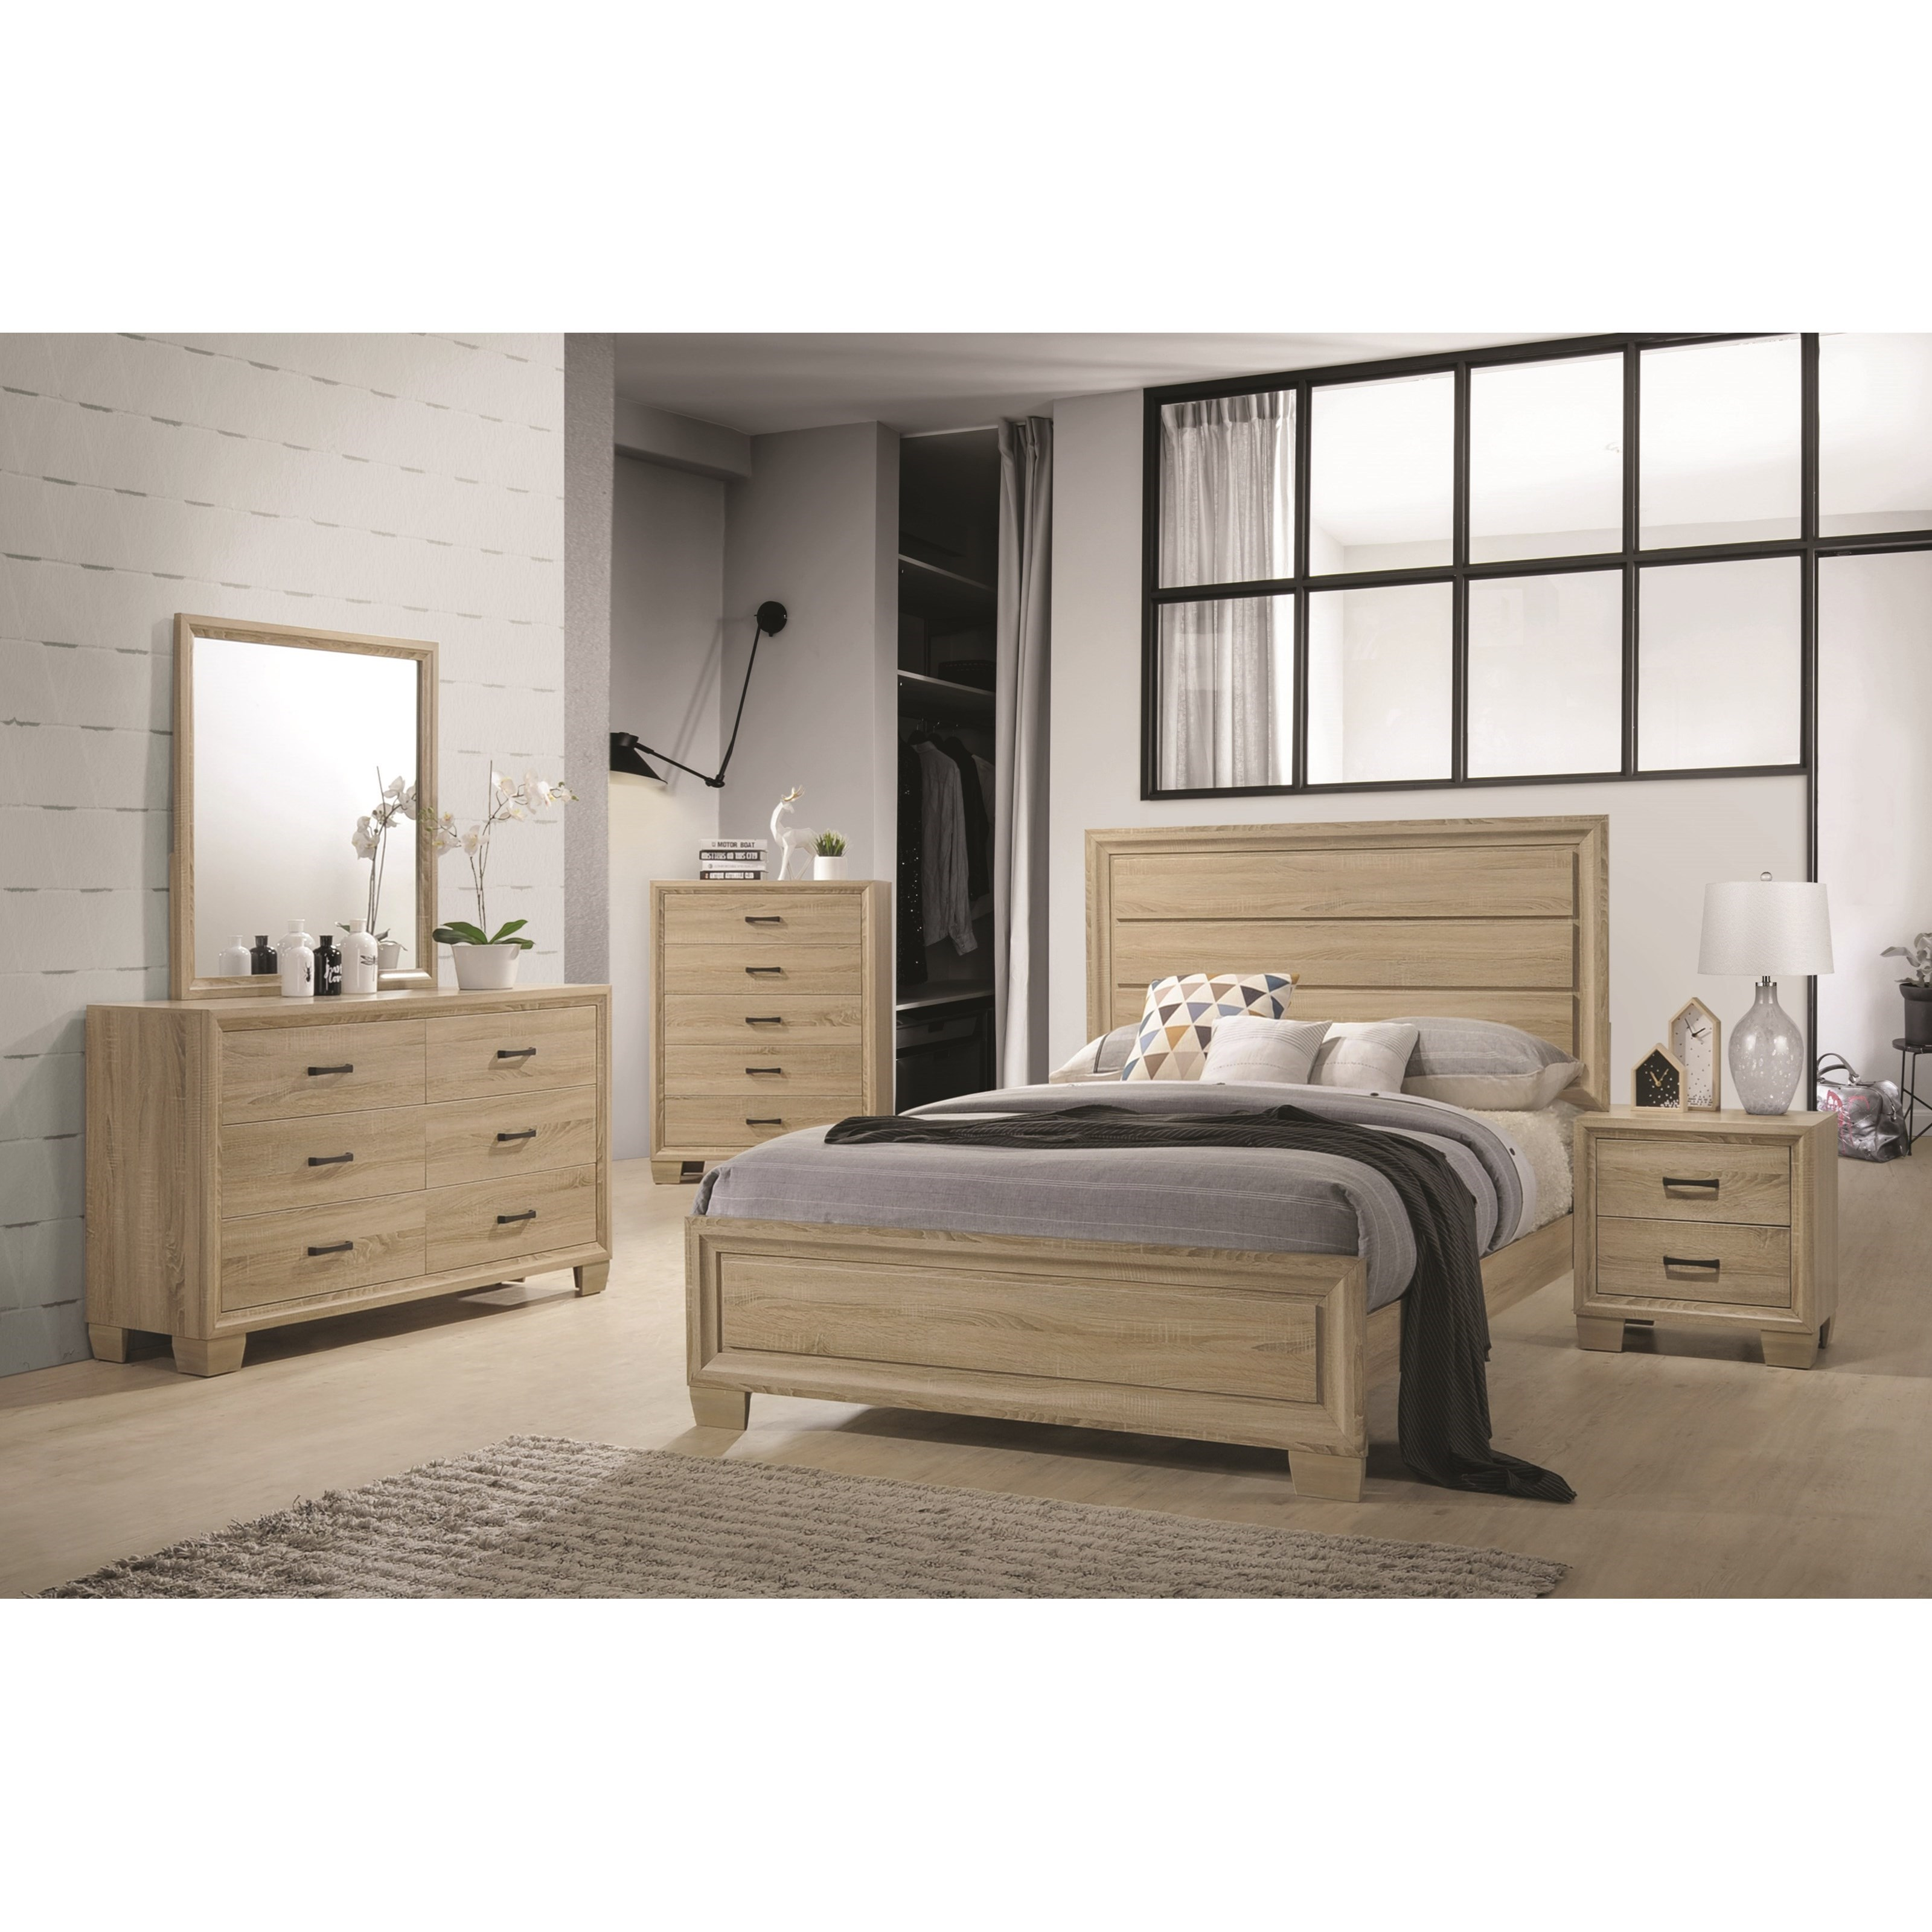 Coaster #206351 Vernon Bedroom Group - Curley\'s Furniture Store ...